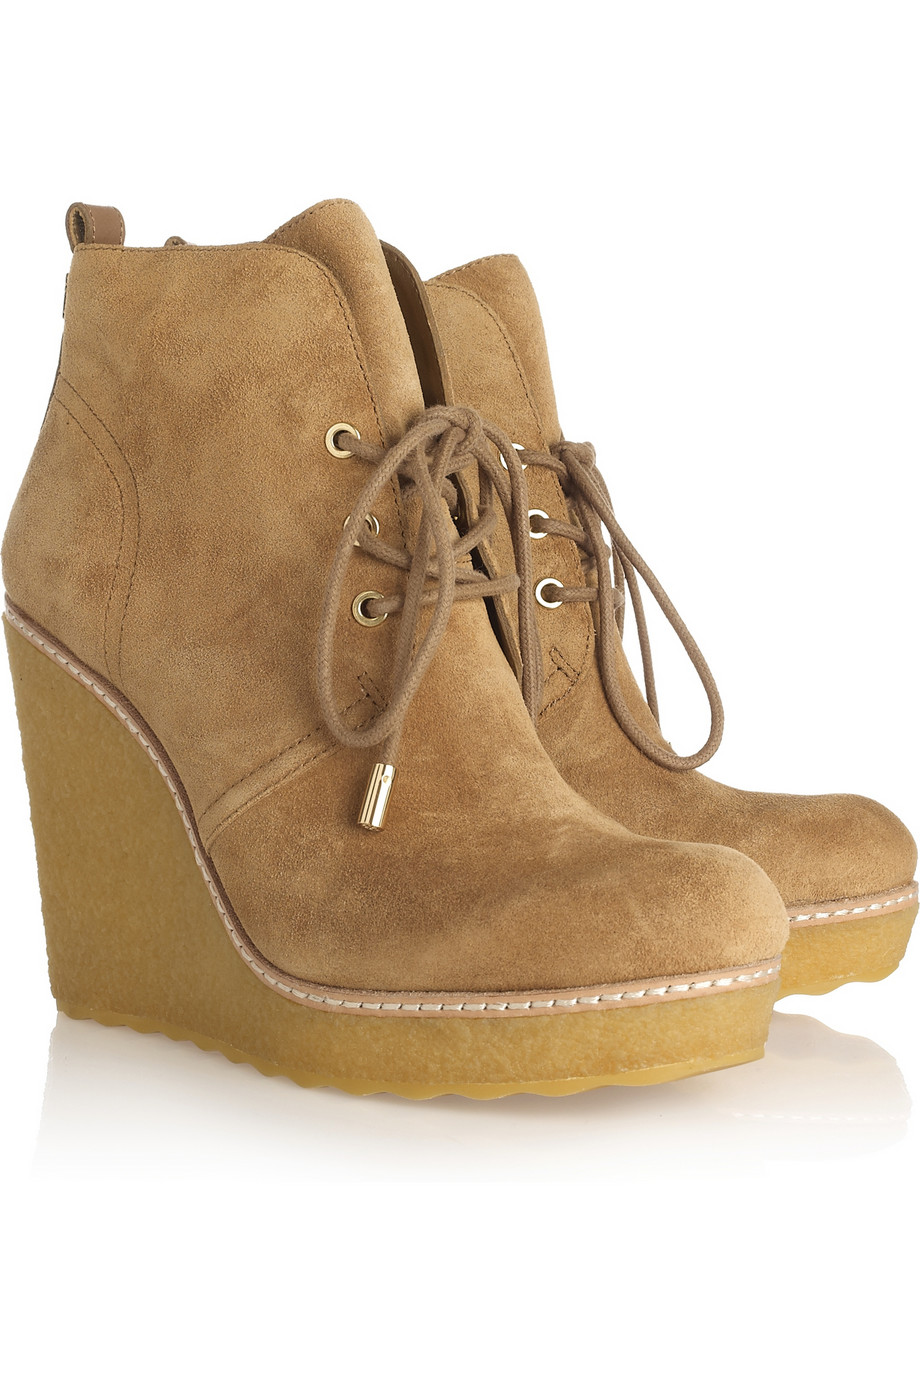 Tory Burch Denise Suede Wedge Boots In Beige Camel Lyst